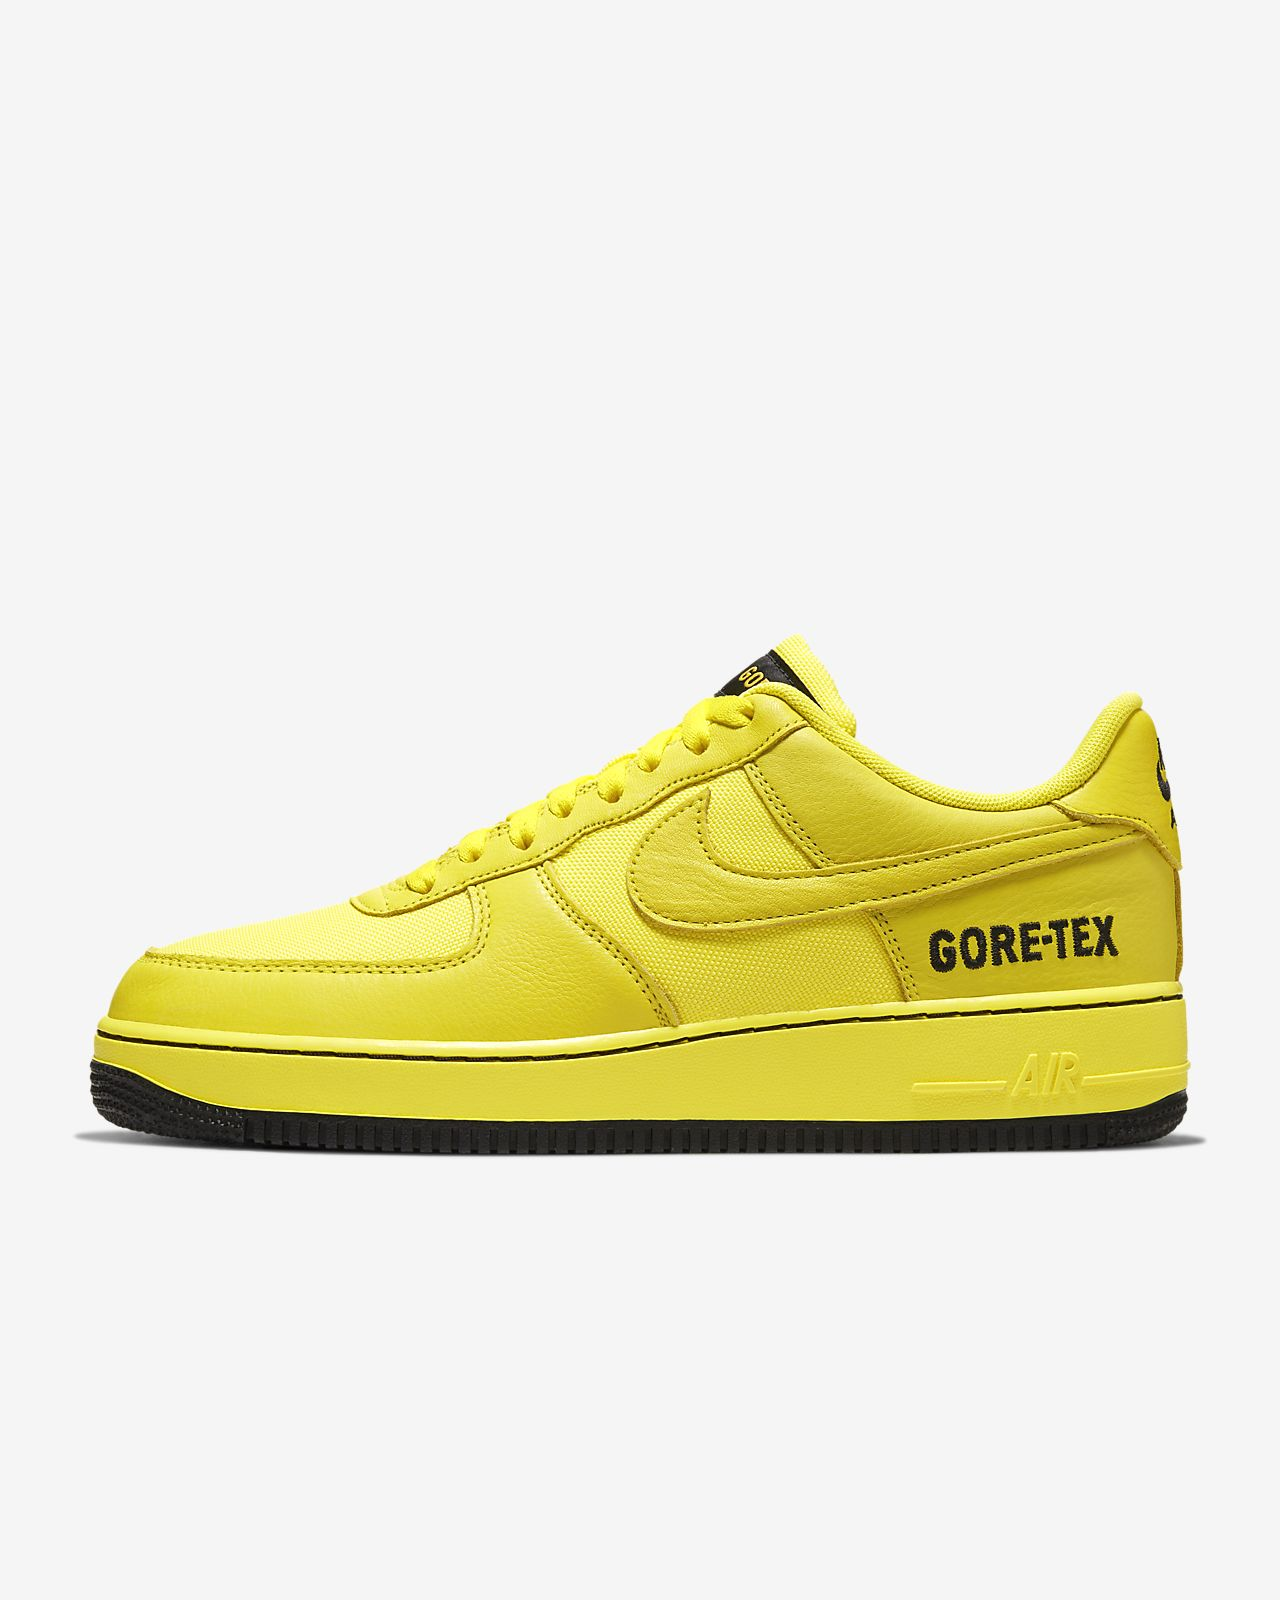 Nike Air Force 1 GORE-TEX ® Shoe